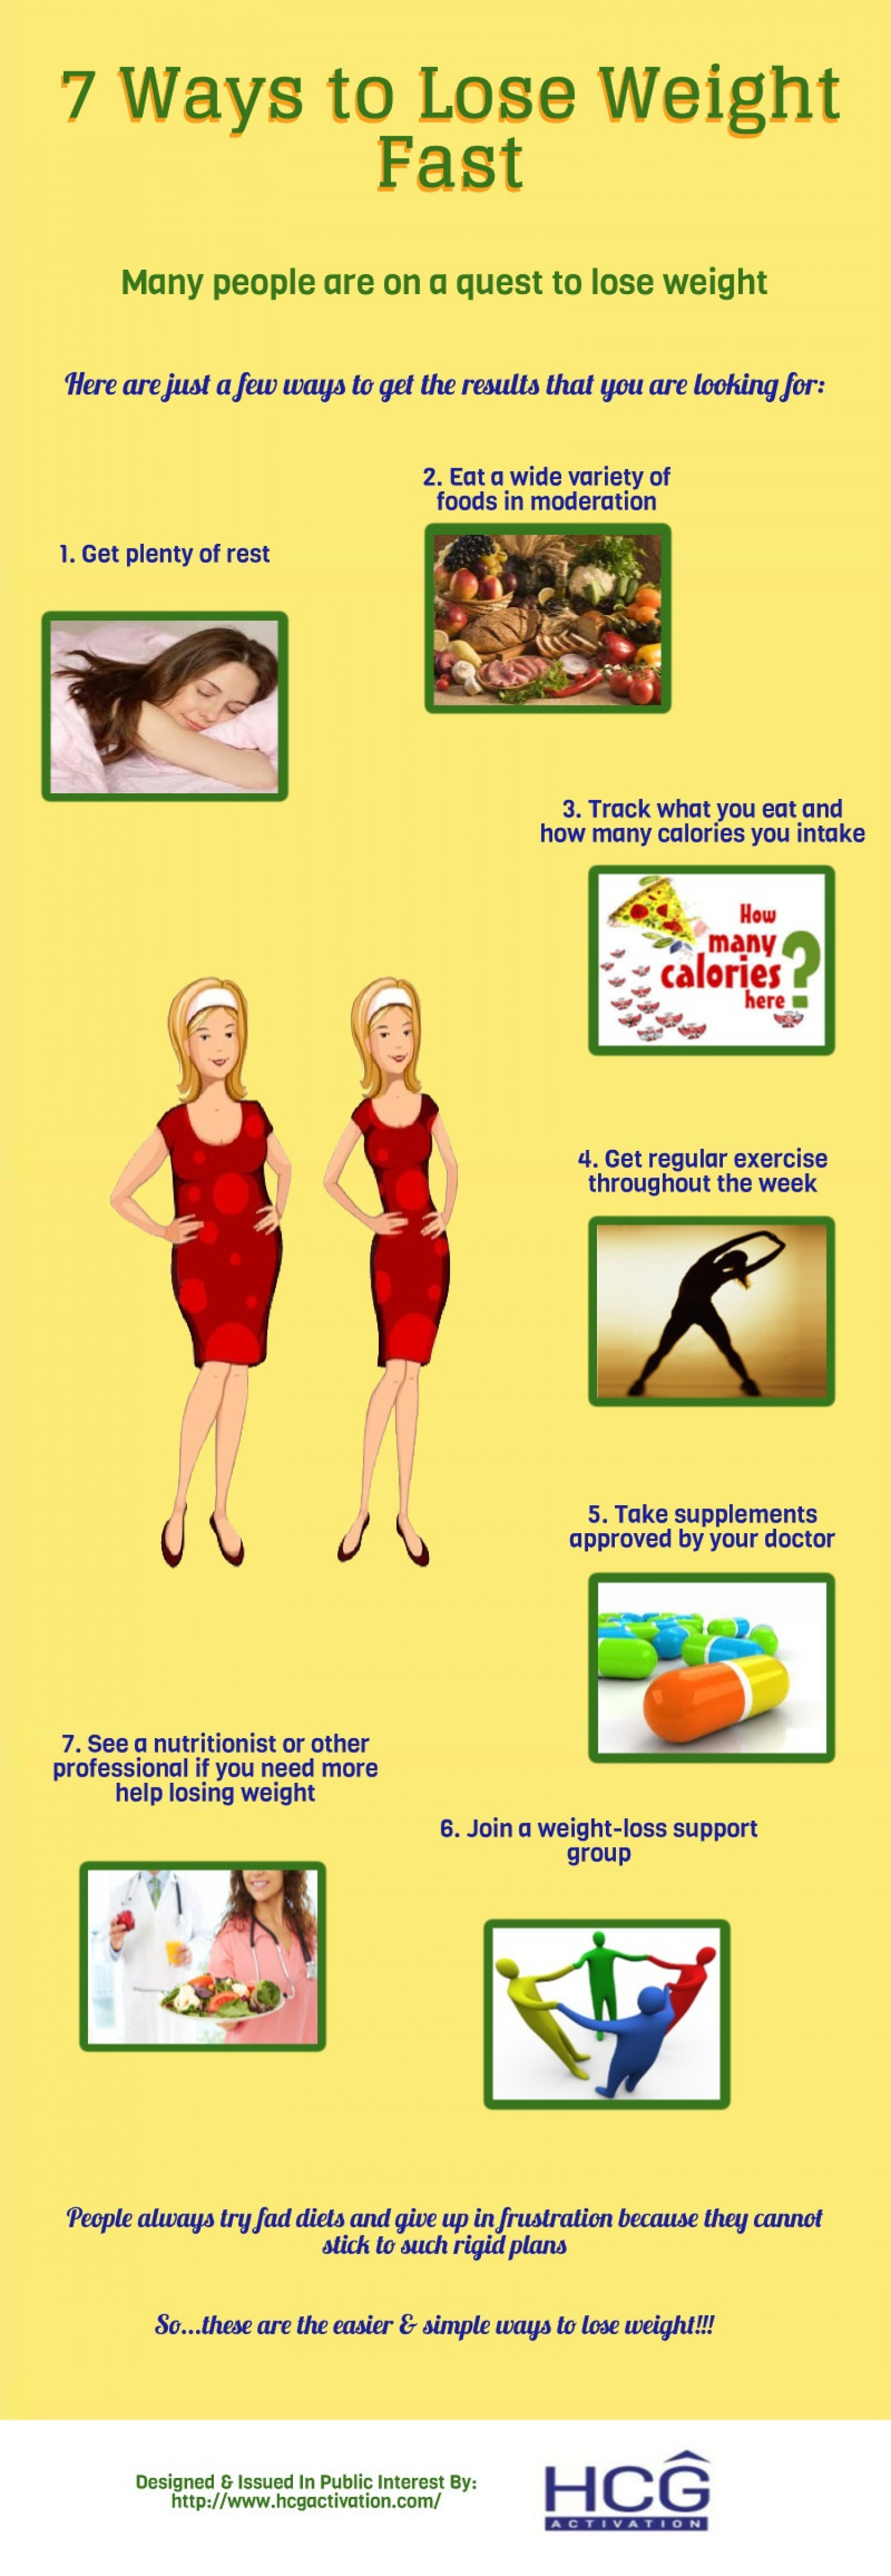 Medication for weight loss and energy image 13